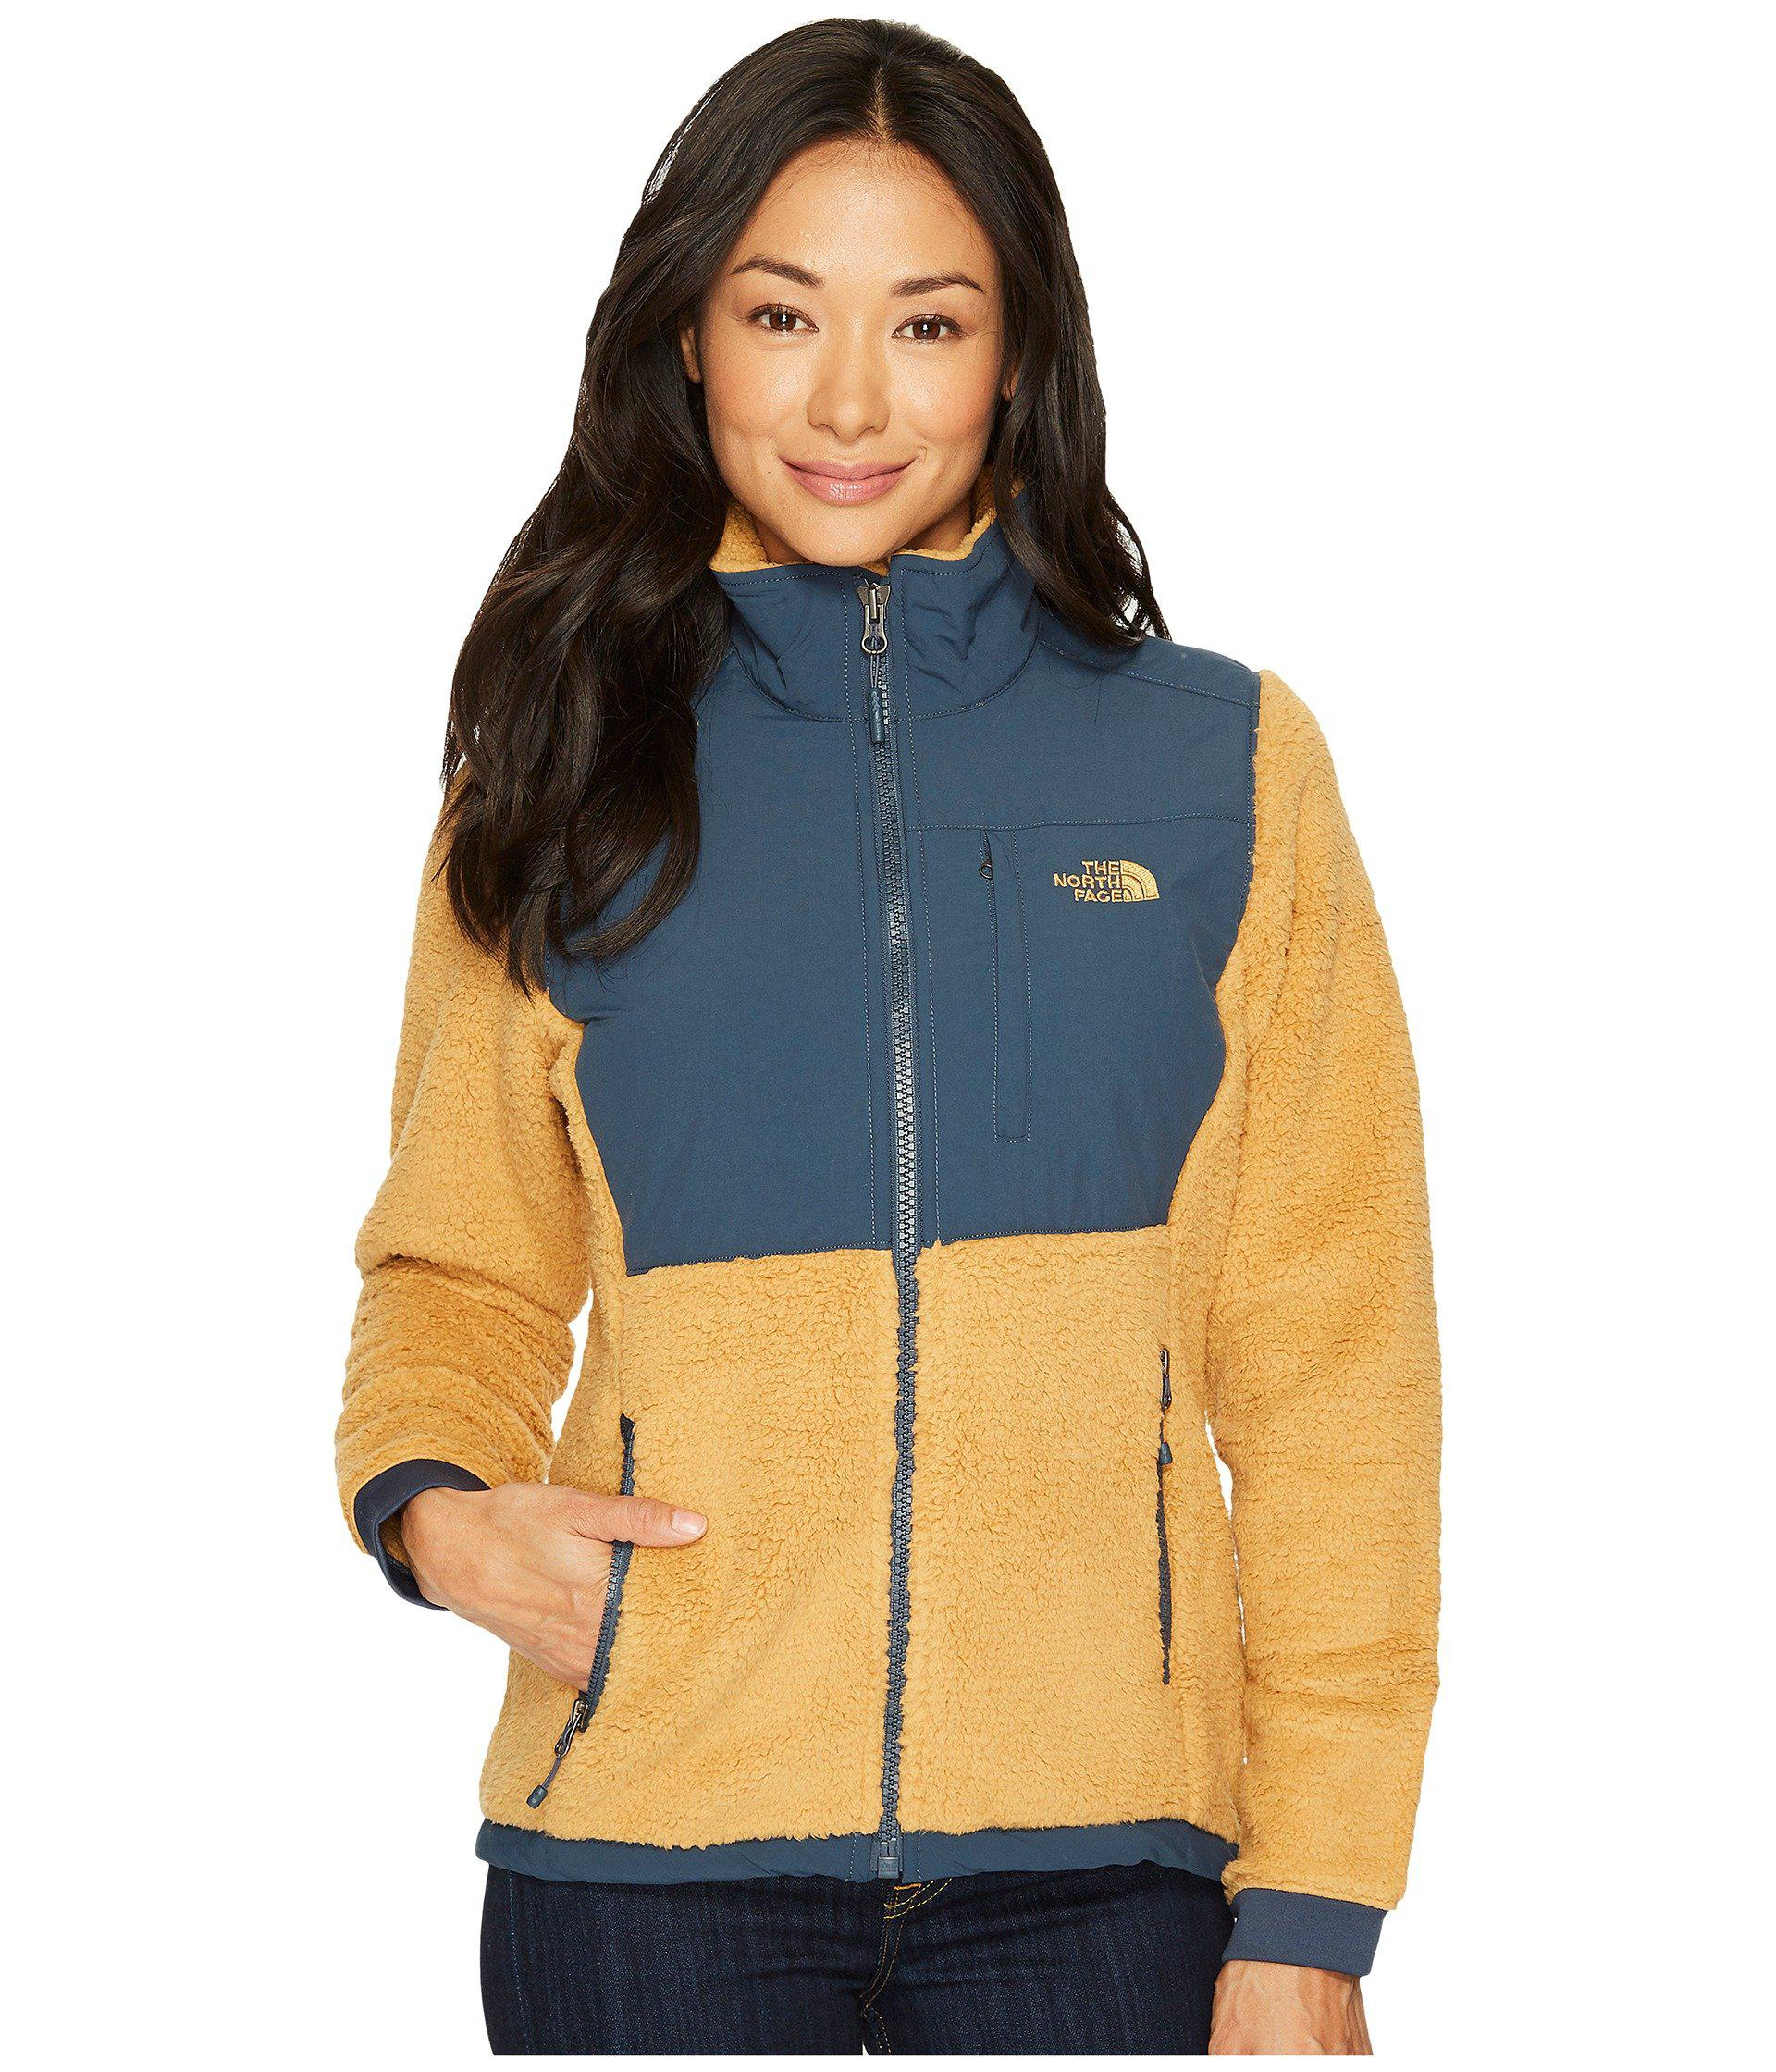 697f93439dfd Lyst - The North Face Sherpa Denali Jacket in Blue - Save 34%